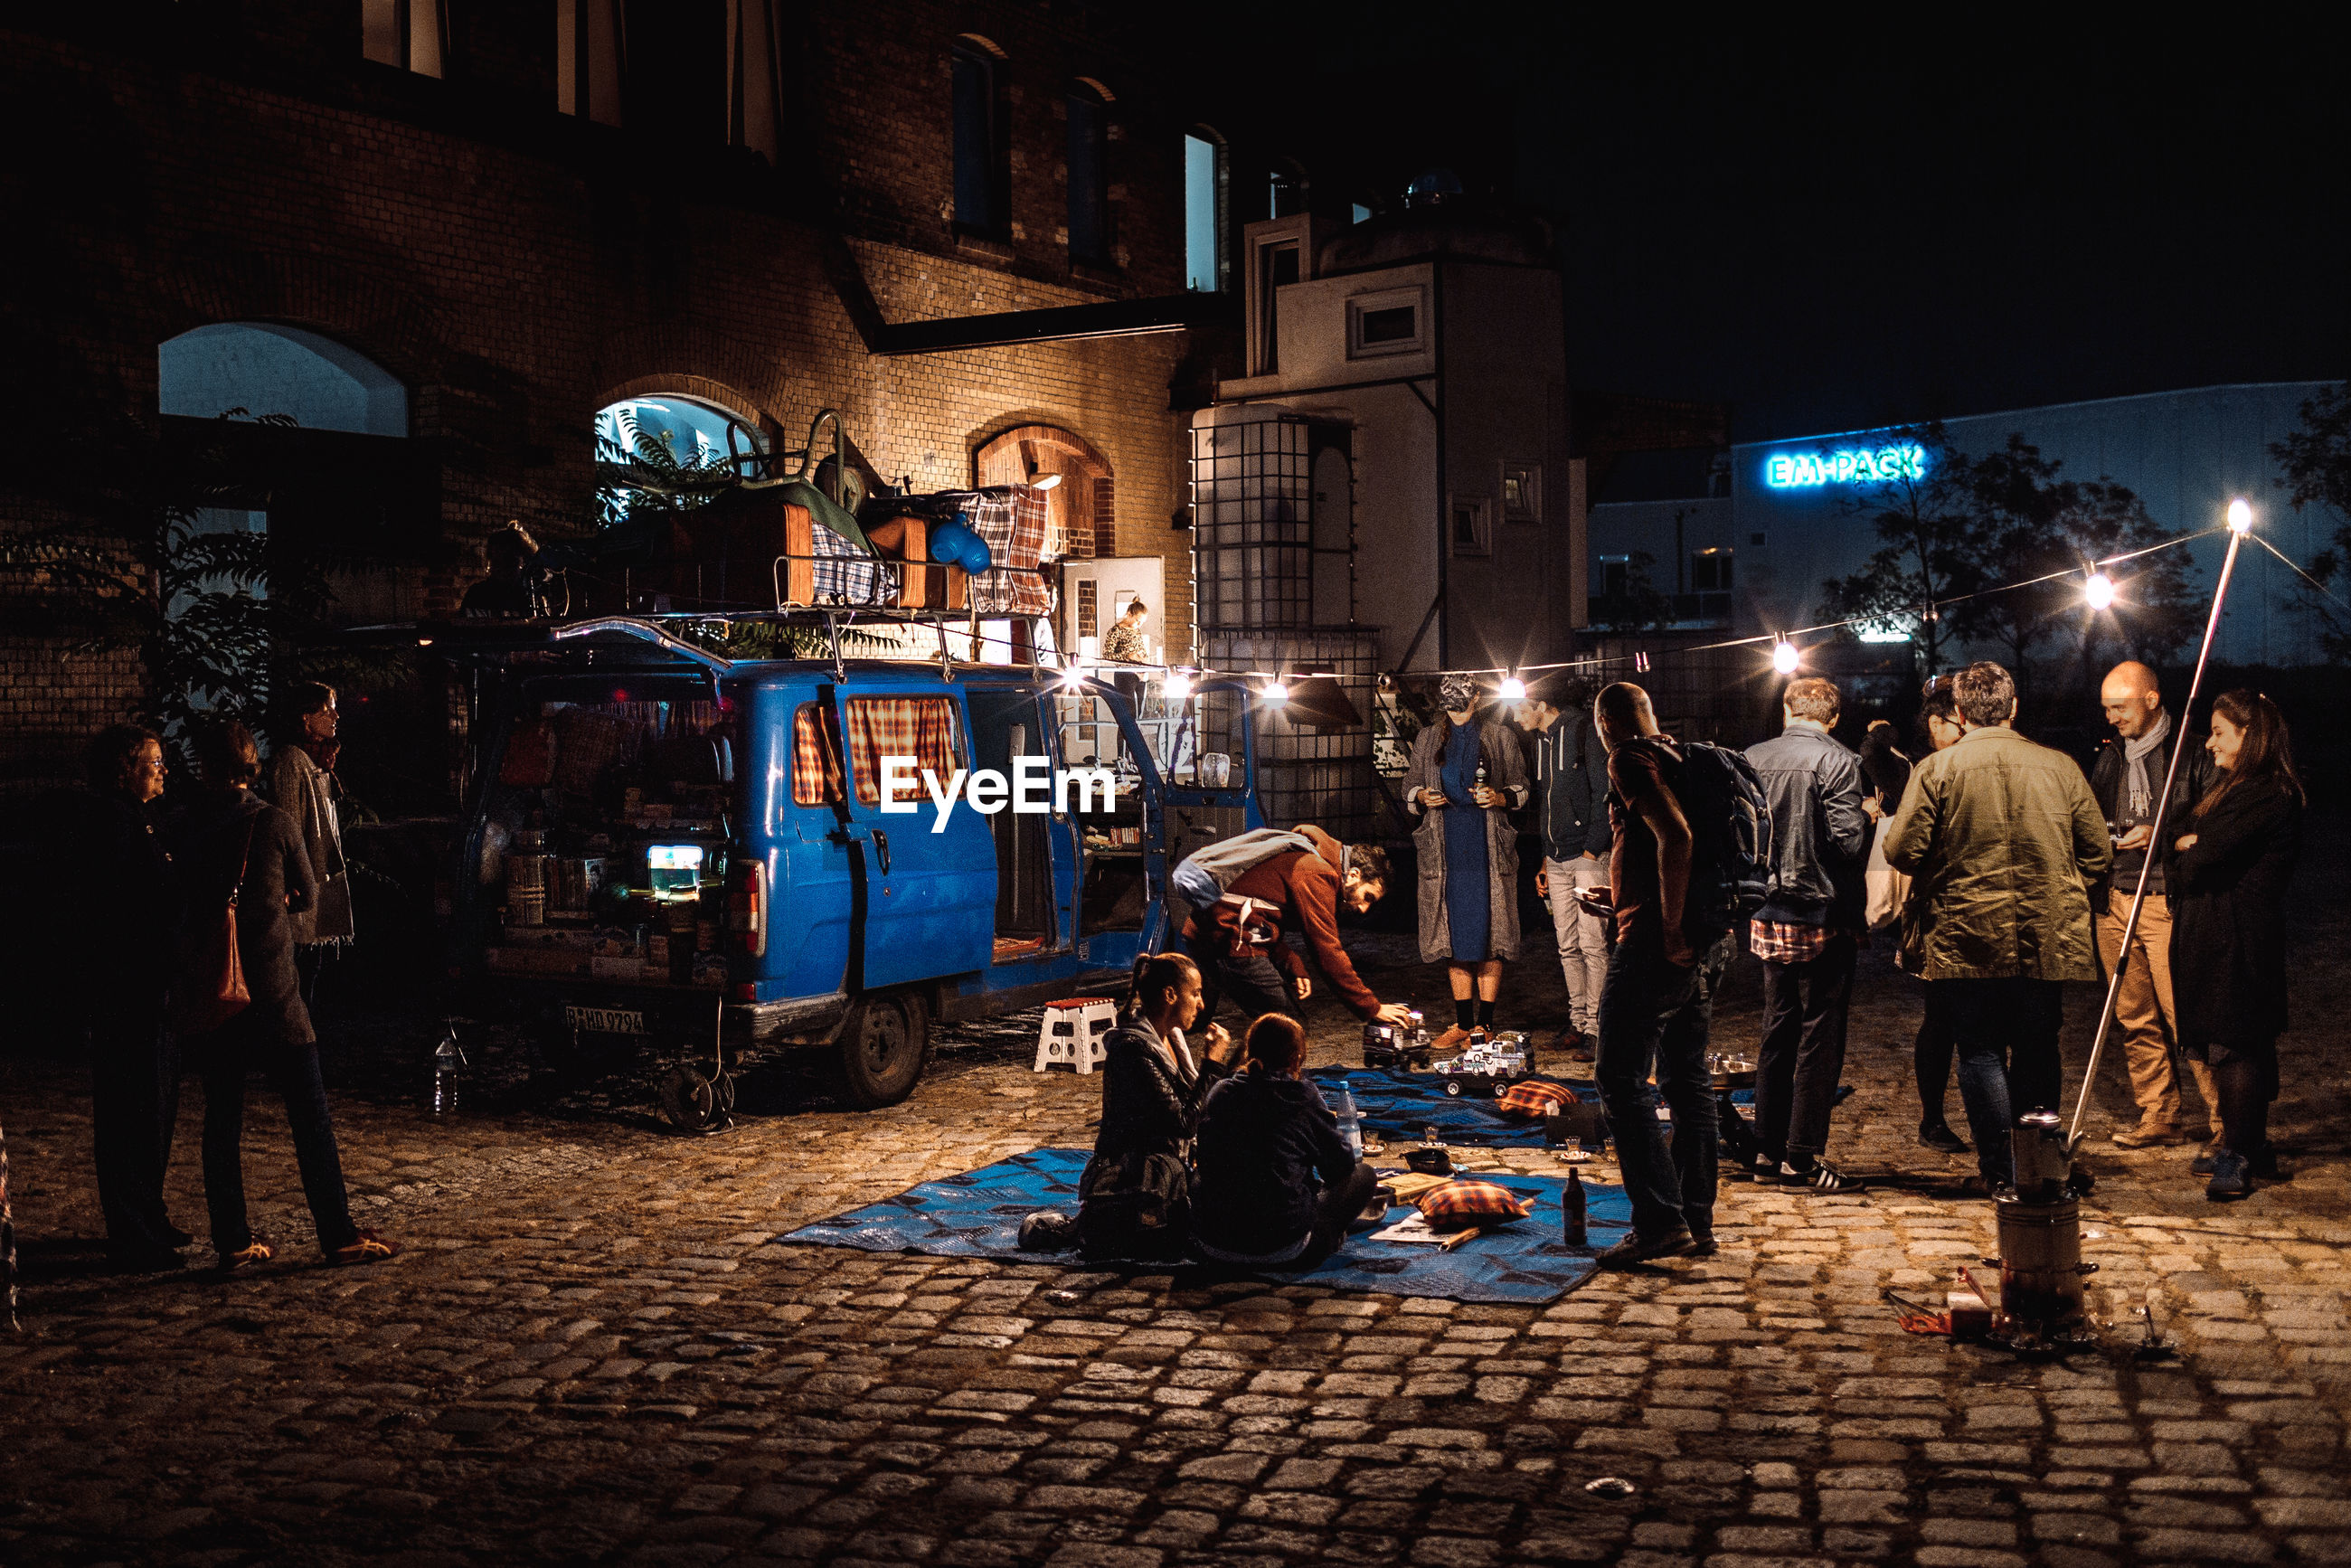 illuminated, night, architecture, building exterior, built structure, men, street, city, cobblestone, person, full length, city street, group of people, sky, outdoors, city life, performance